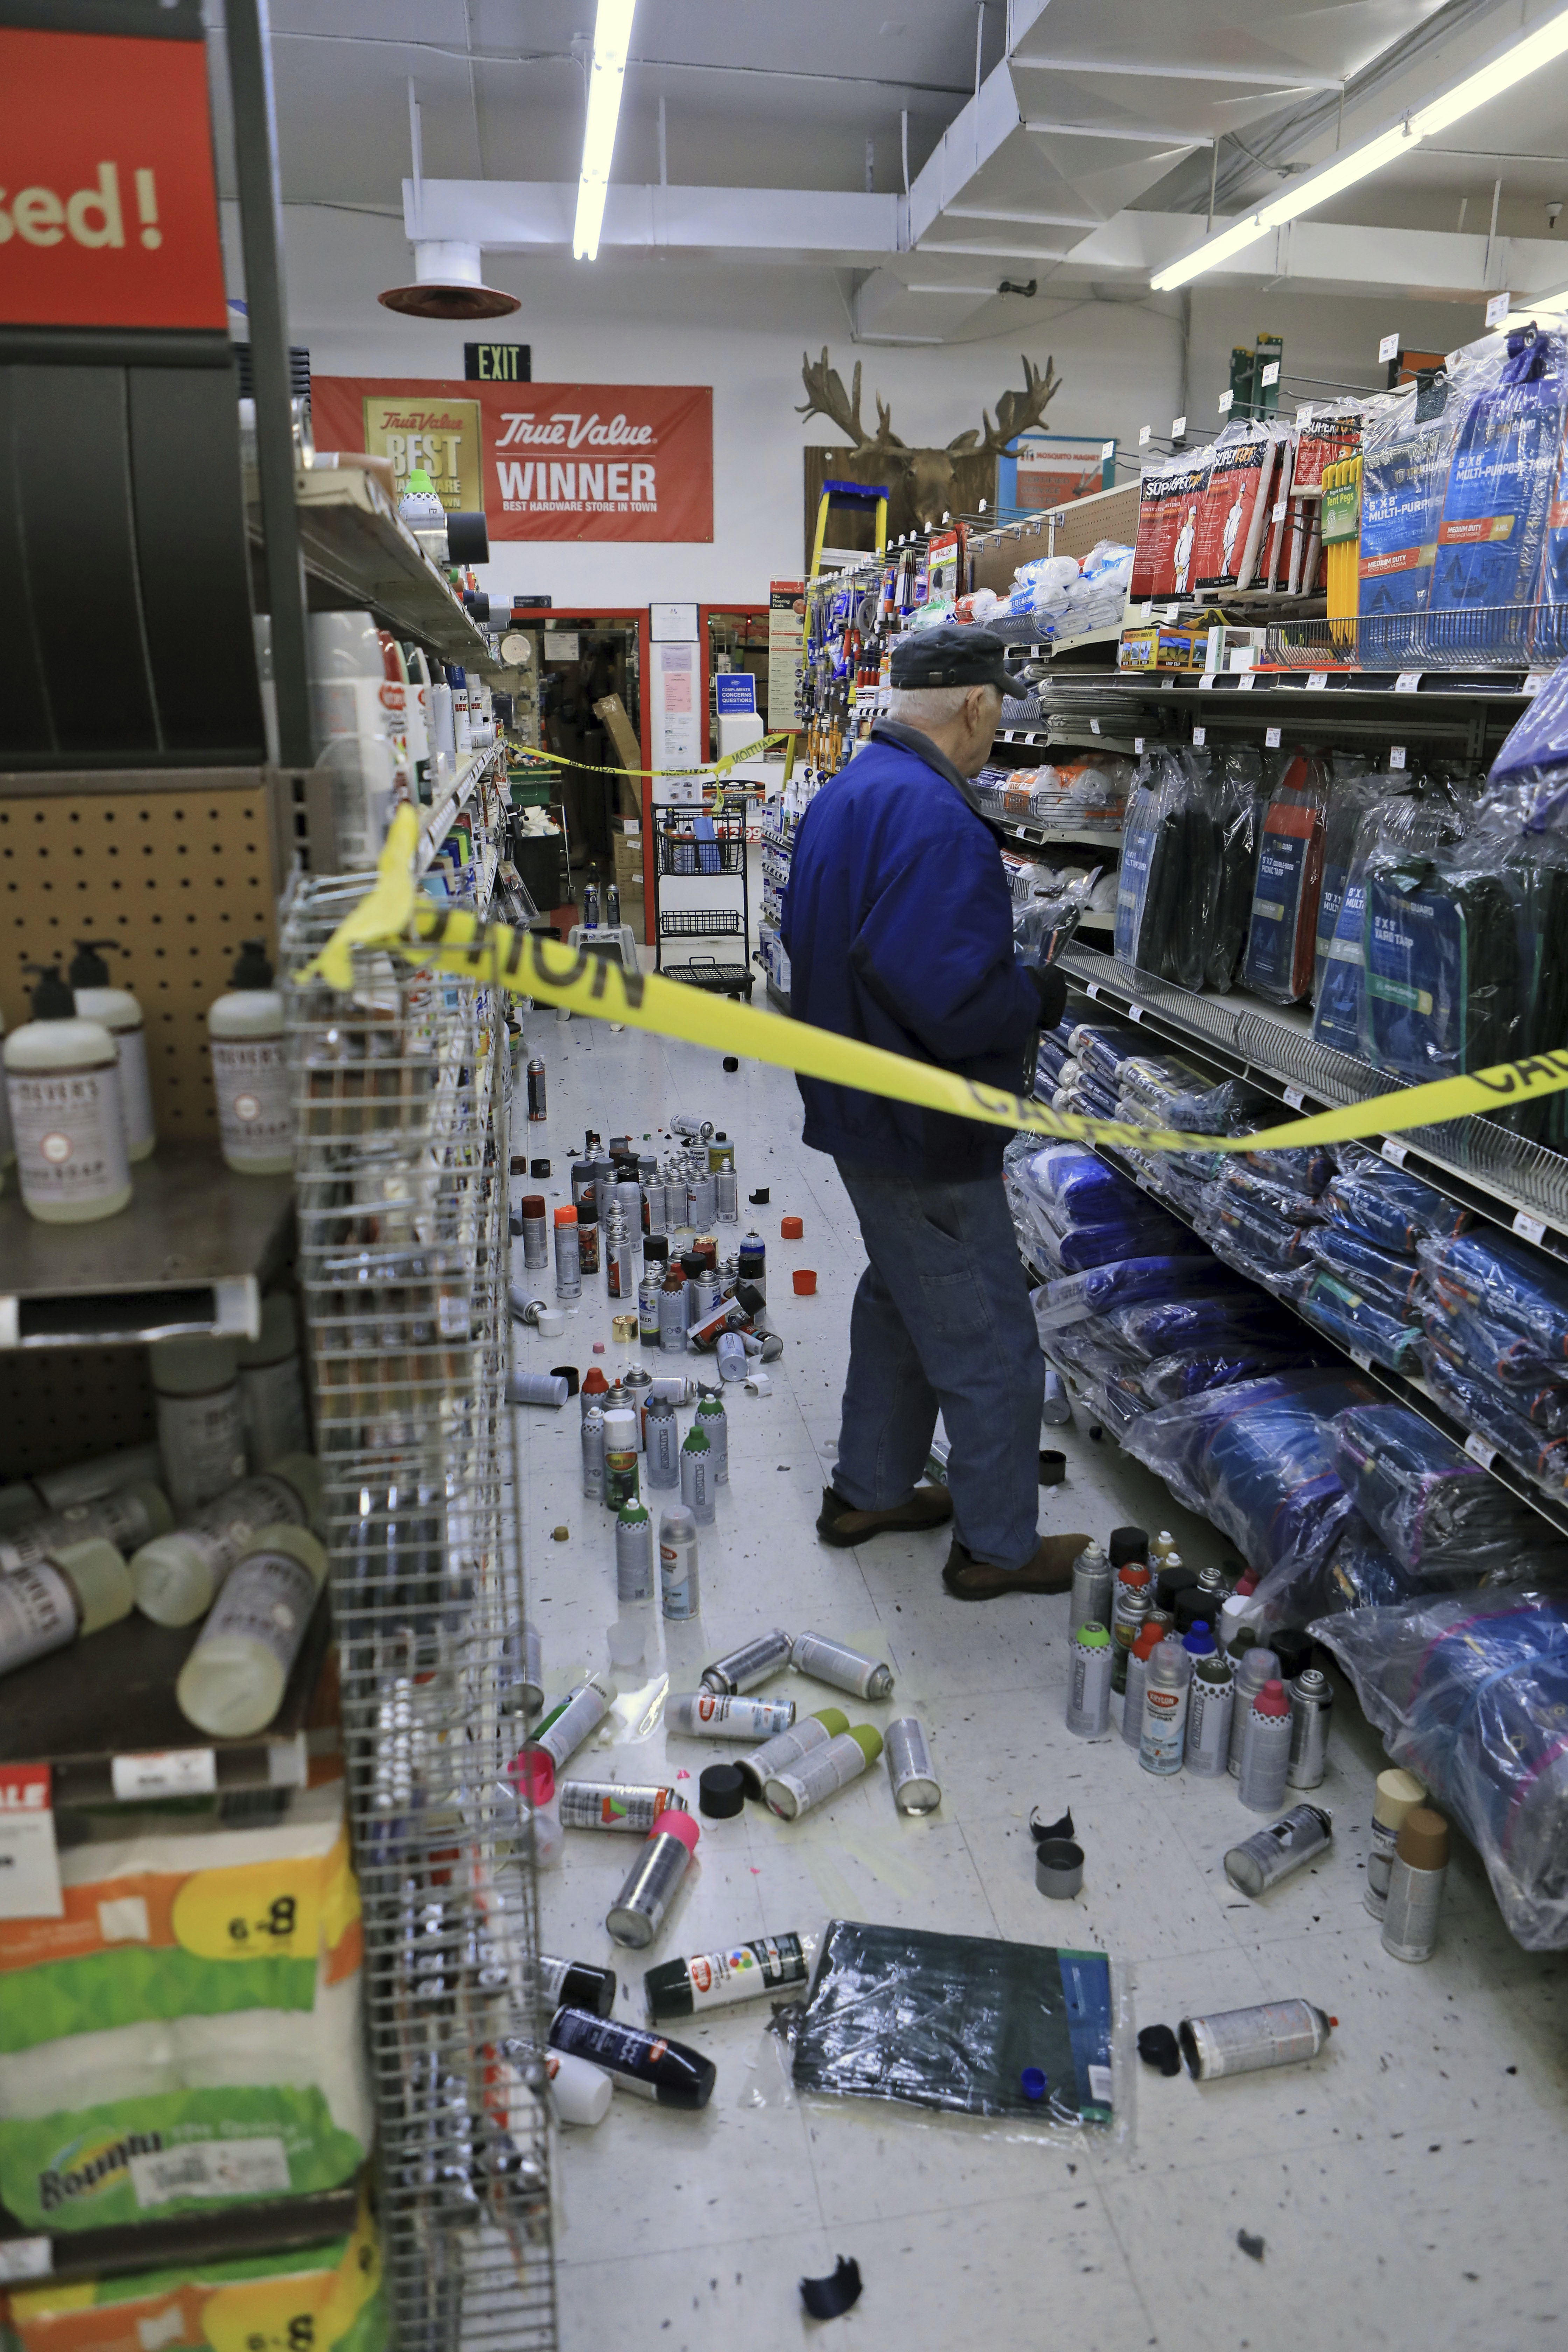 A customer at Anchorage True Value hardware store shops in the partially cleaned-up paint aisle after an earthquake Friday morning, Nov. 30, 2018, in Anchorage, Alaska. Tim Craig, owner of the south Anchorage store, said no one was injured but hundreds of items hit the floor and two shelves collapsed in a stock room. (AP Photo/Dan Joling)